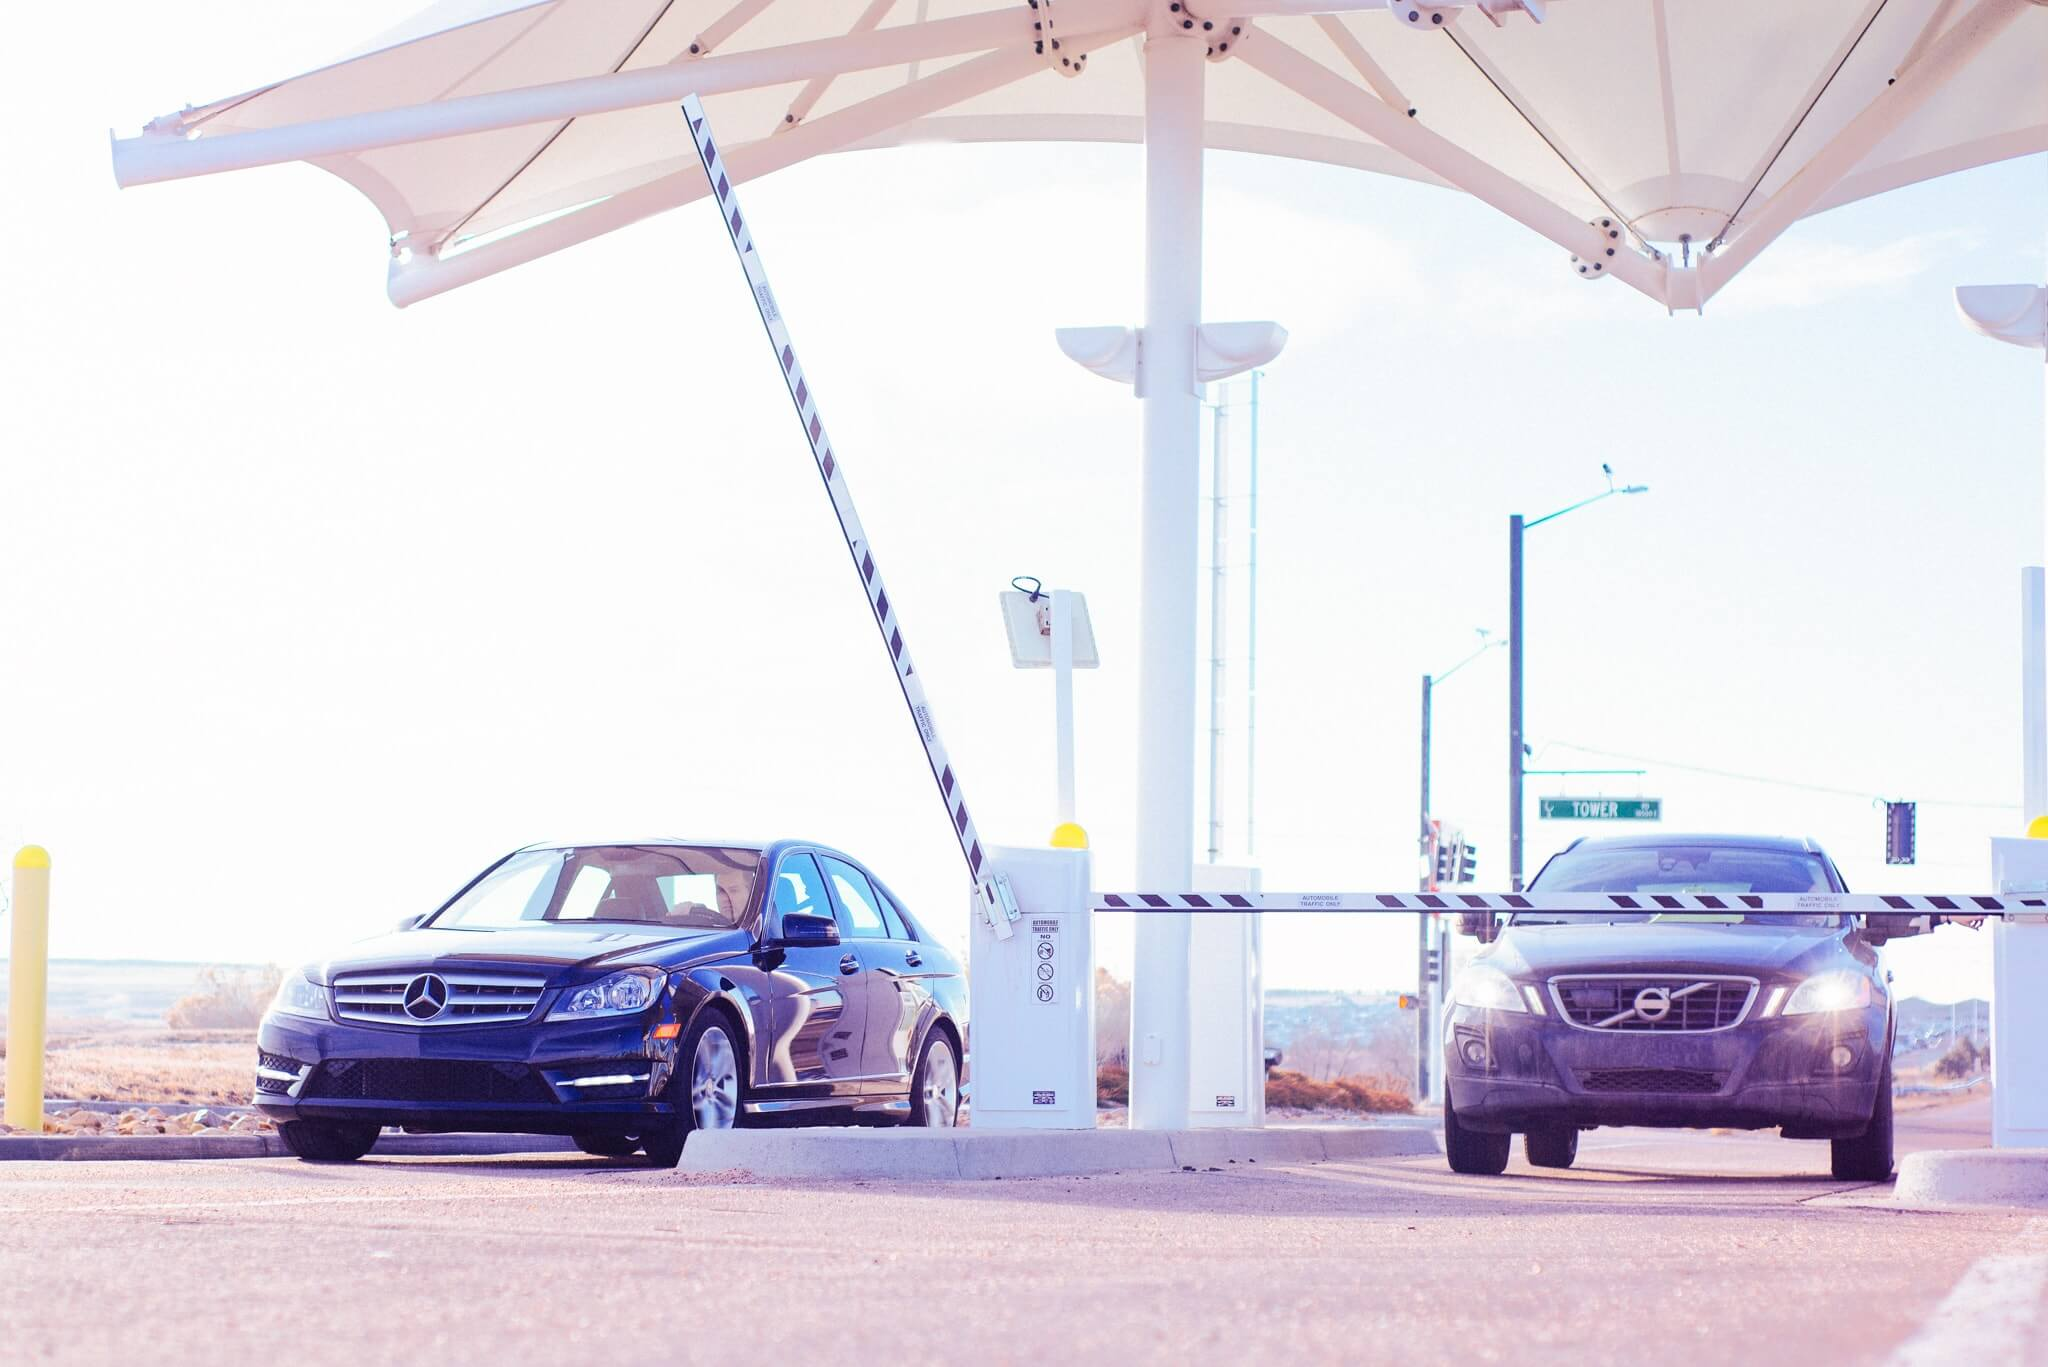 Canopy Airport Parking | Sustainable Parking and Valet Services